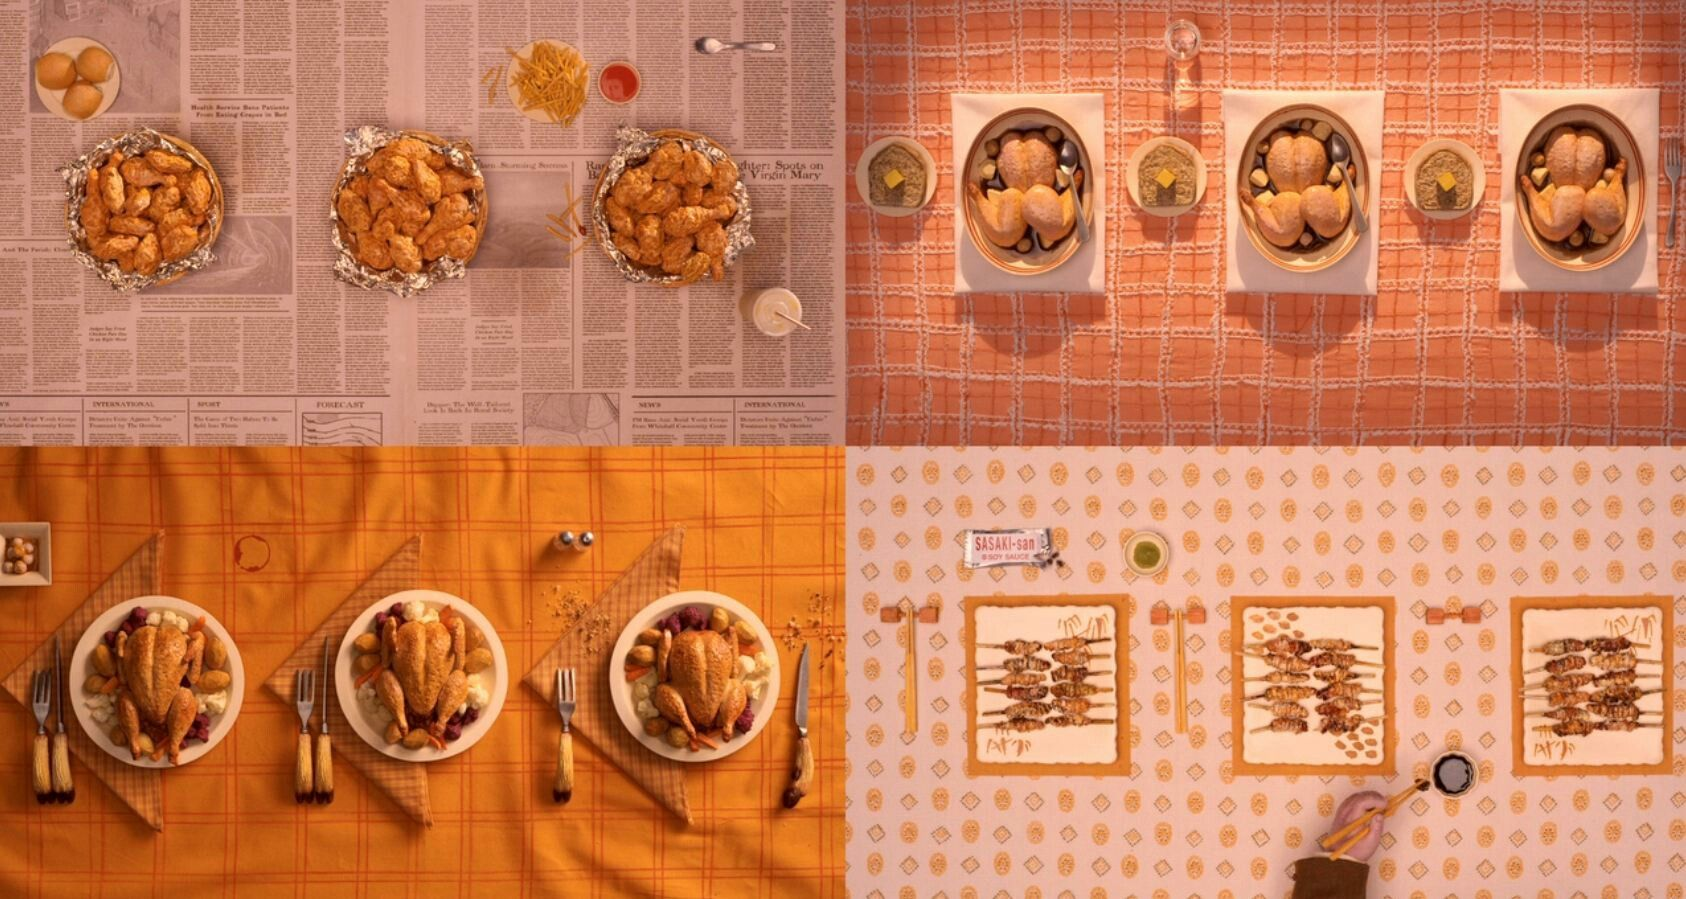 Wes Food Fantastic Mr Fox Wes Anderson Movies Wes Anderson Aesthetic